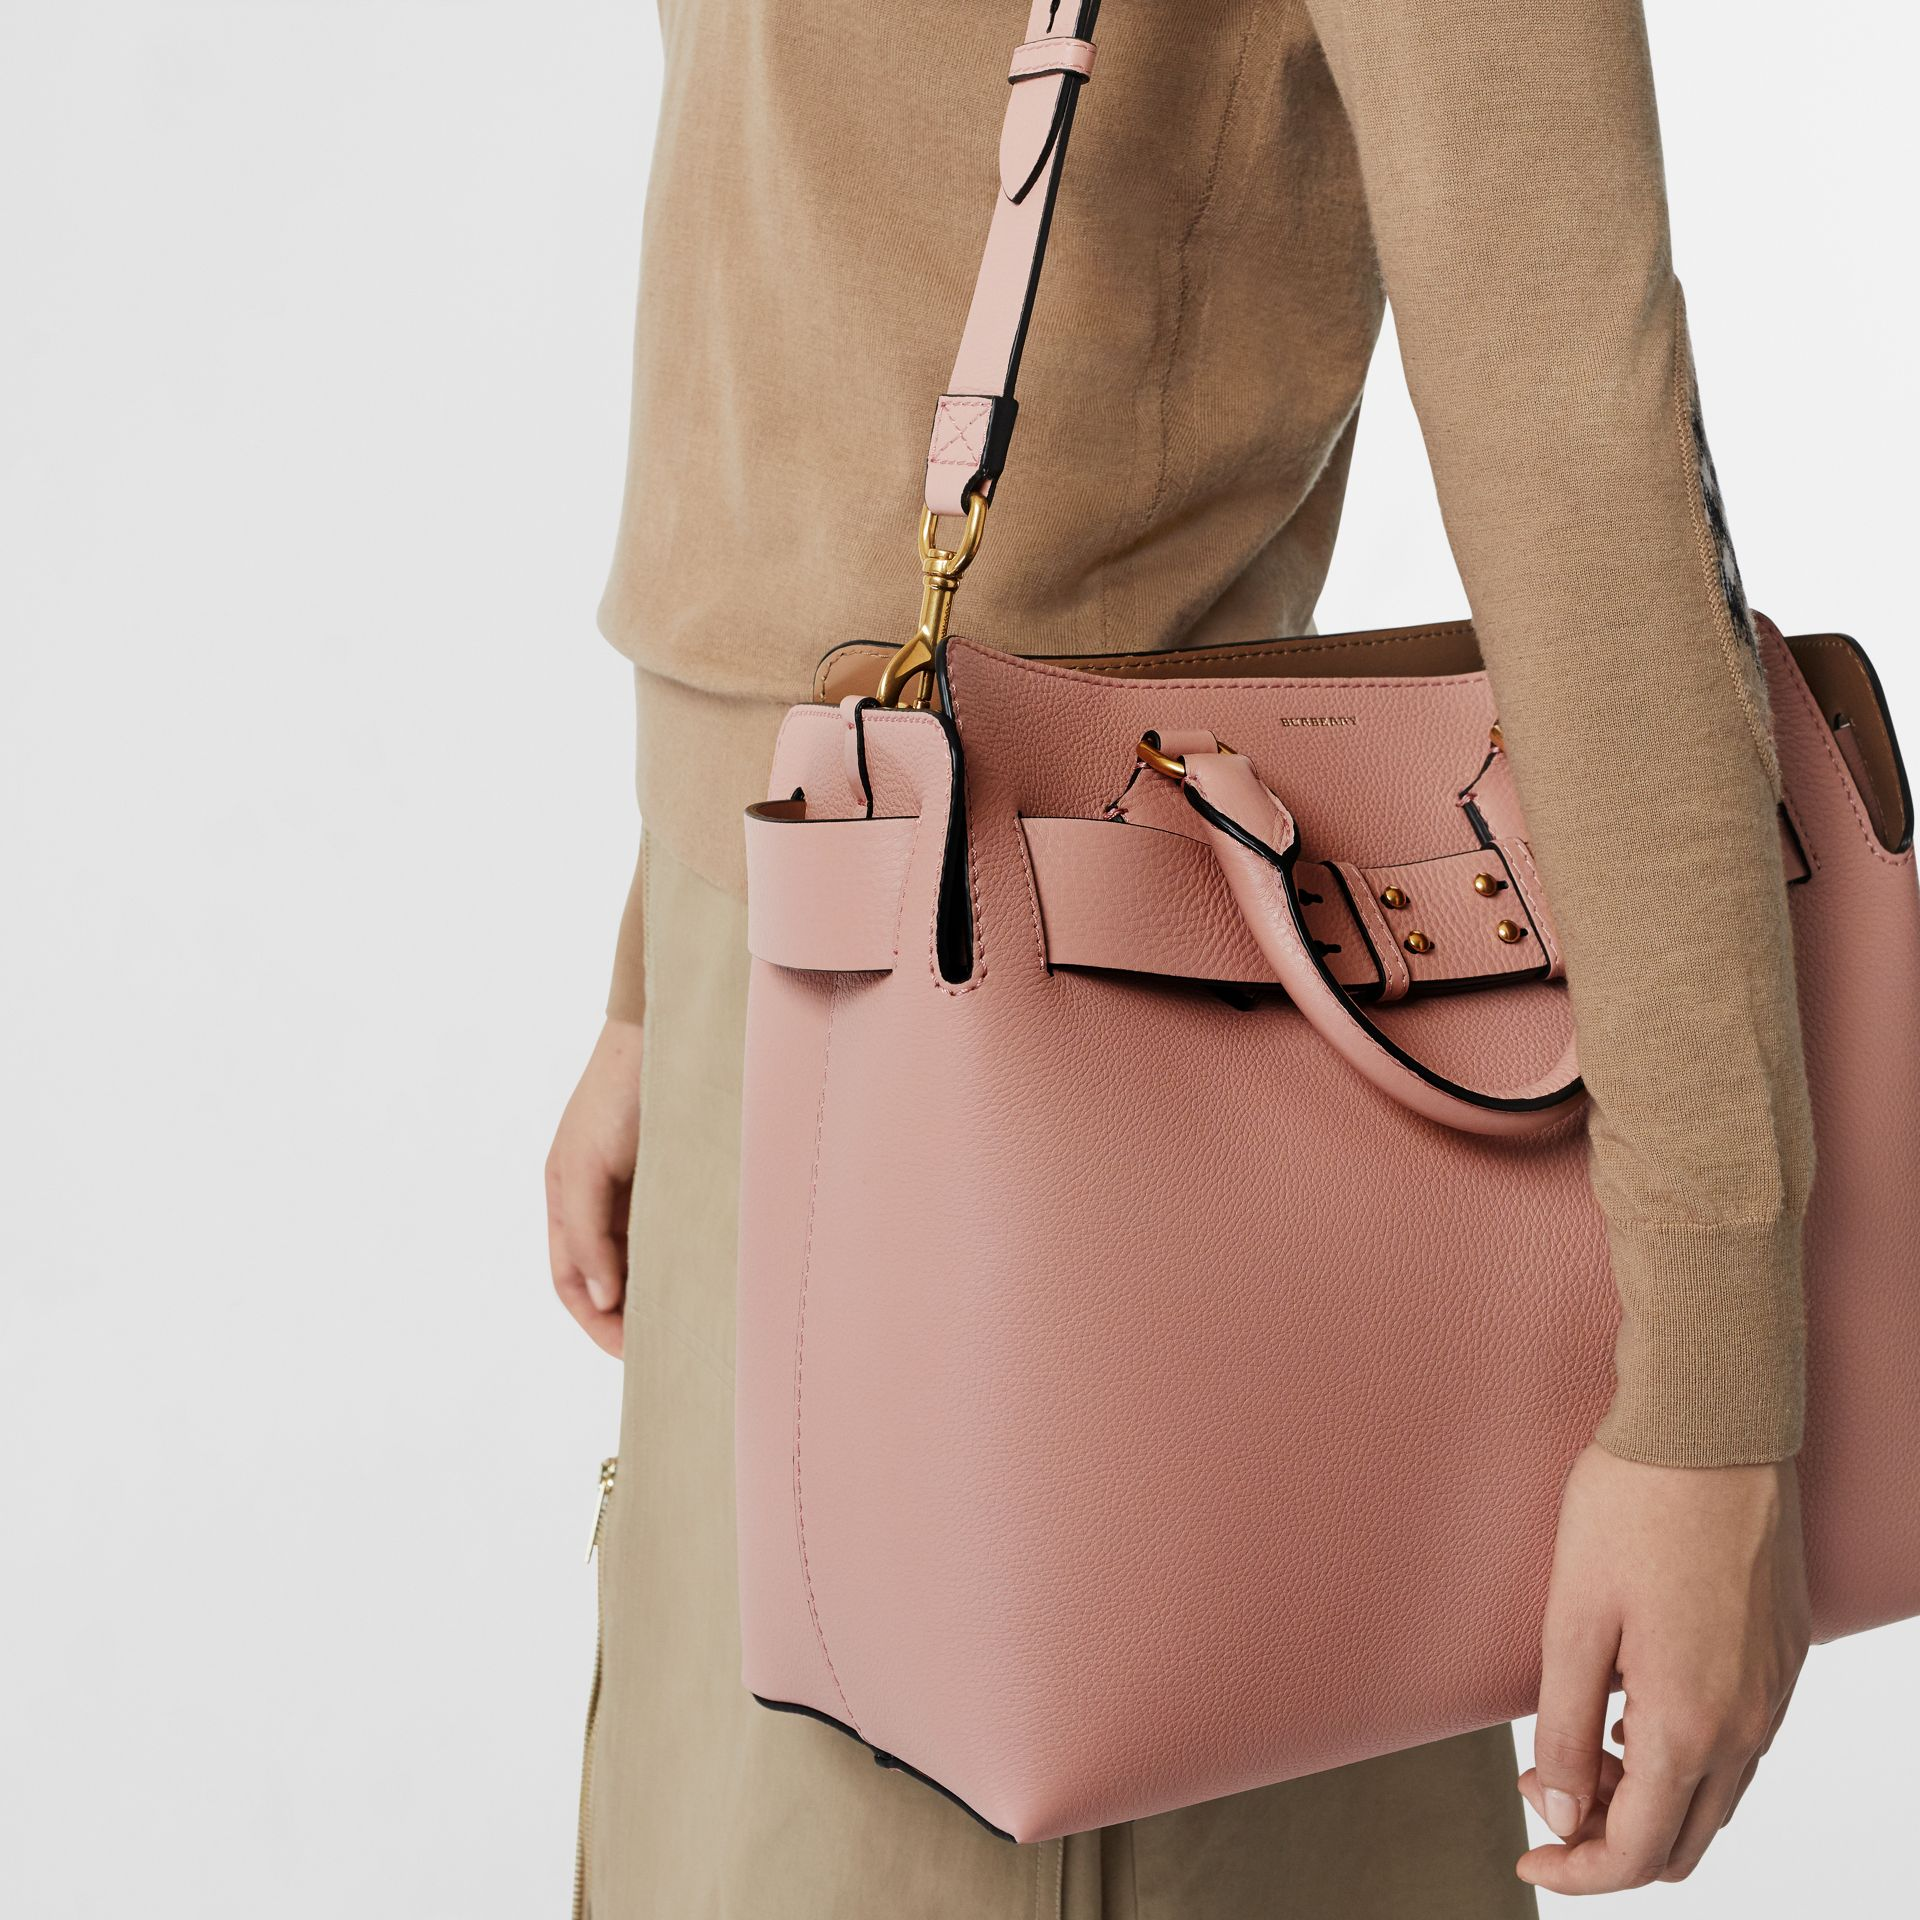 Sac The Belt moyen en cuir (Rose Platiné) - Femme | Burberry - photo de la galerie 3